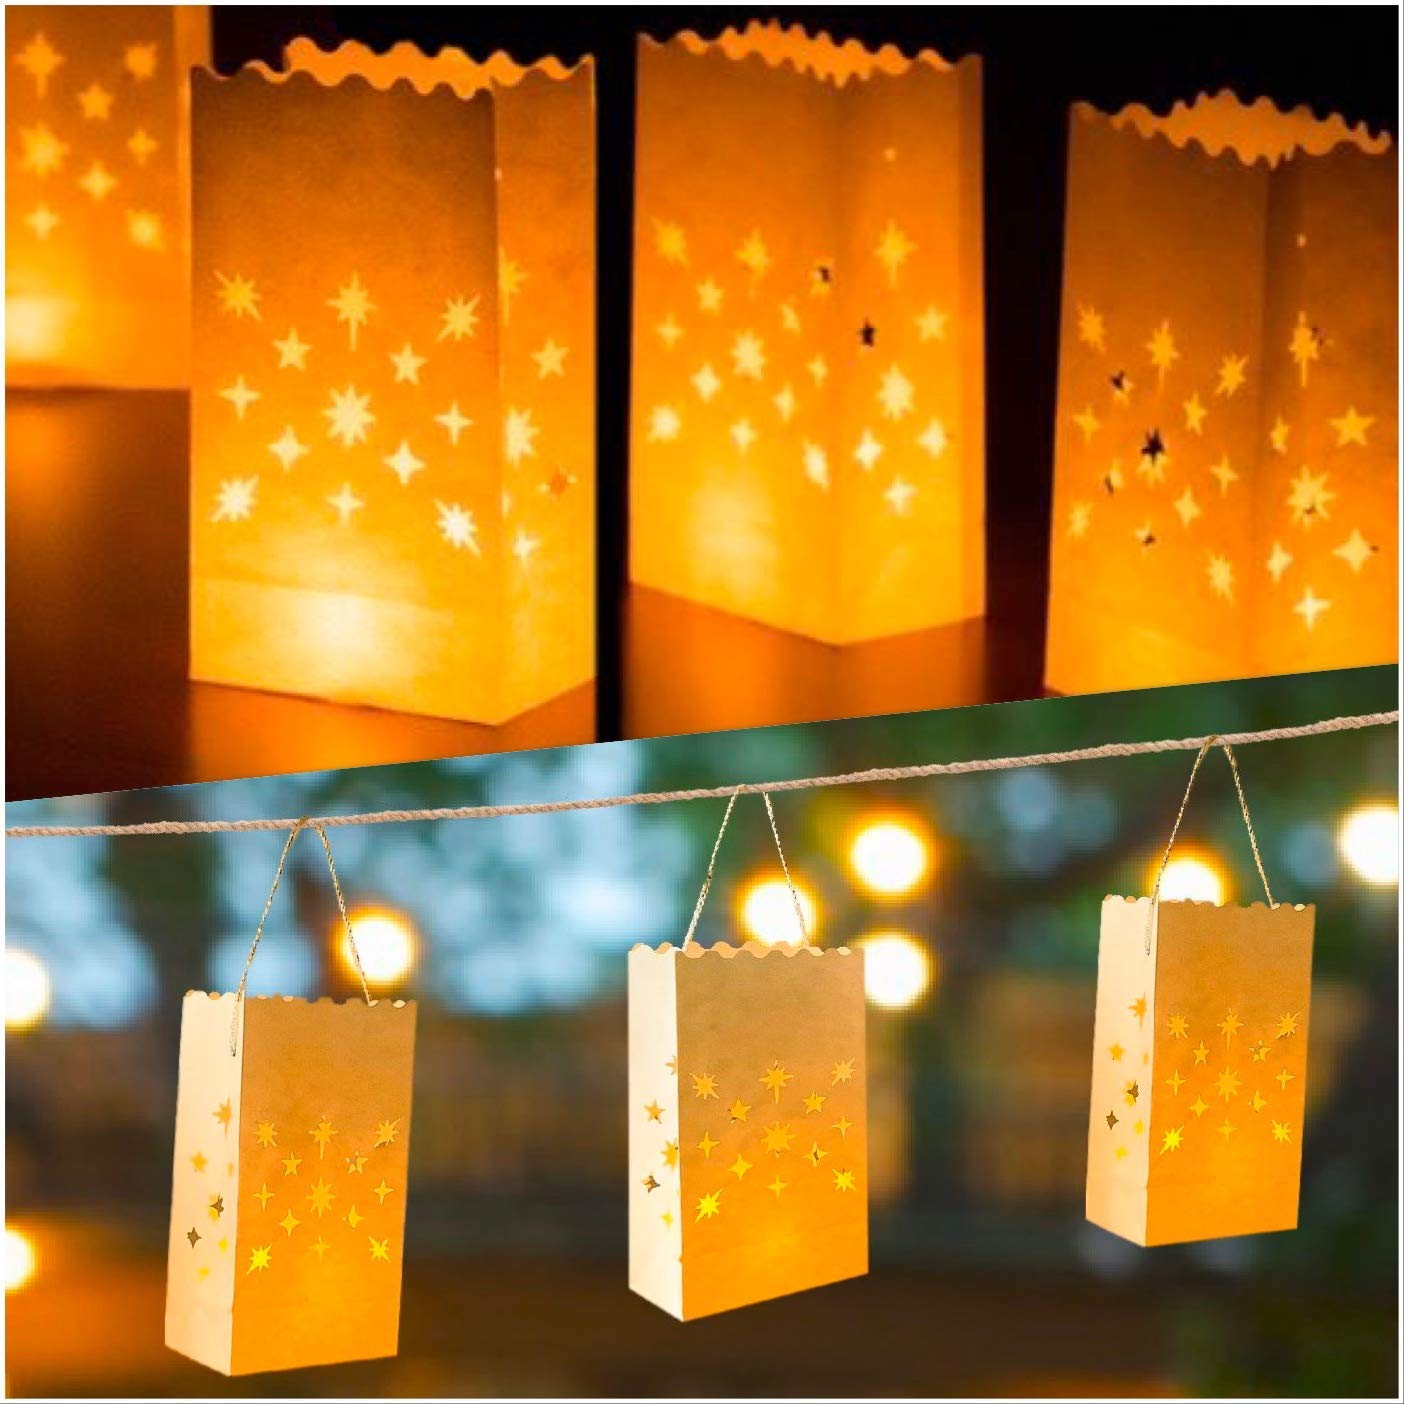 Dreamlight 30 White Luminary Bags/Hanging Lanterns | Flame Resistant | Star Luminaries for Weddings, Birthdays, Parties by Dreamlight